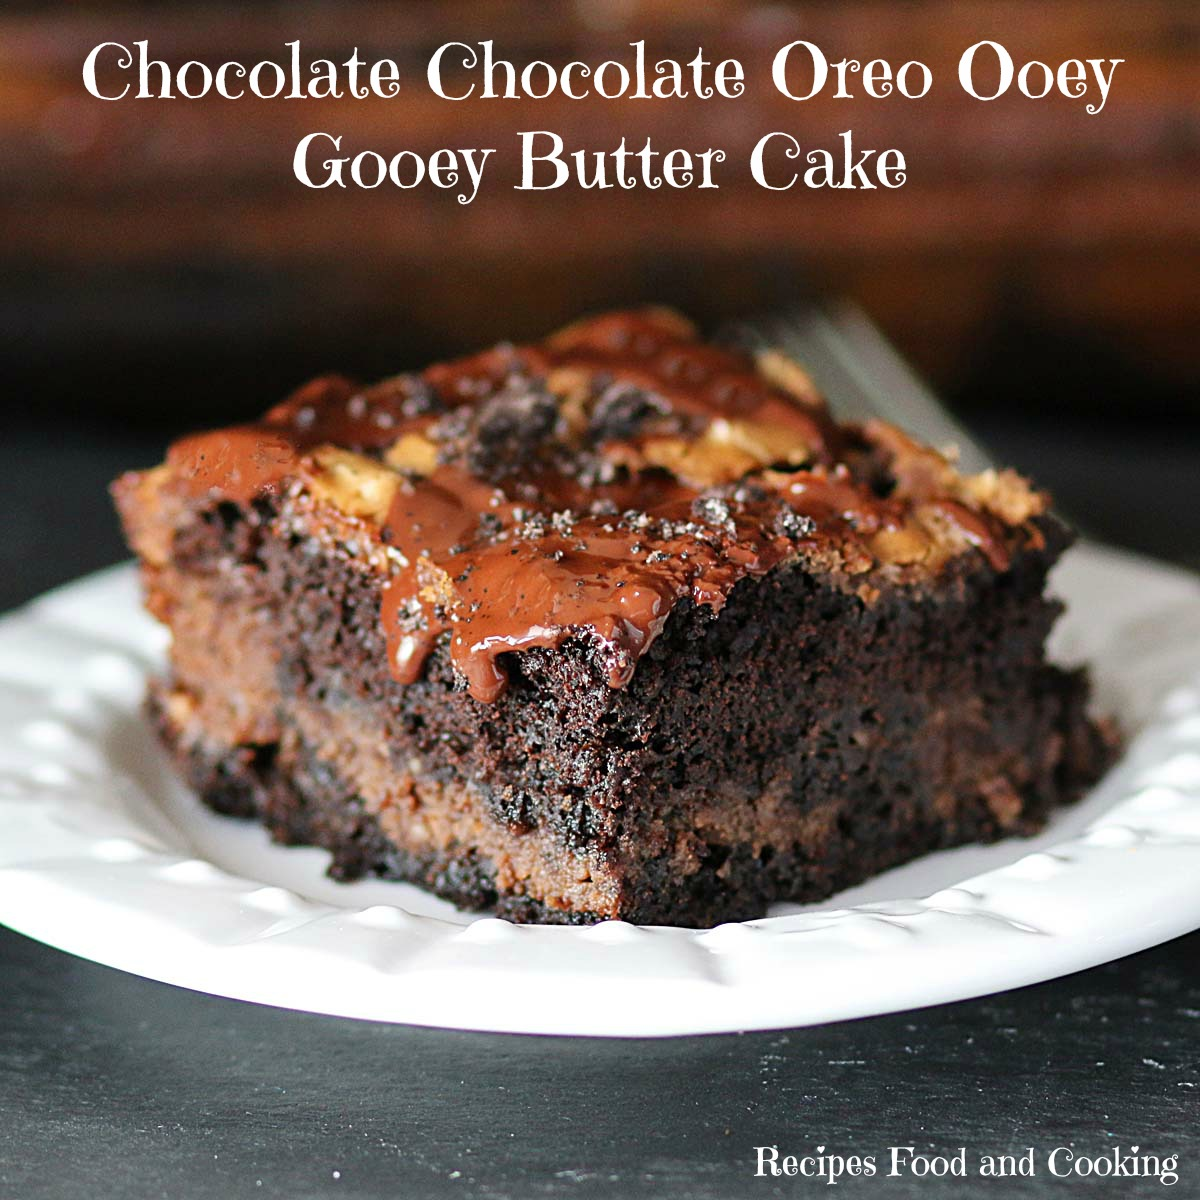 chocolate gooey butter cake chocolate chocolate oreo ooey gooey butter cake recipes 2873